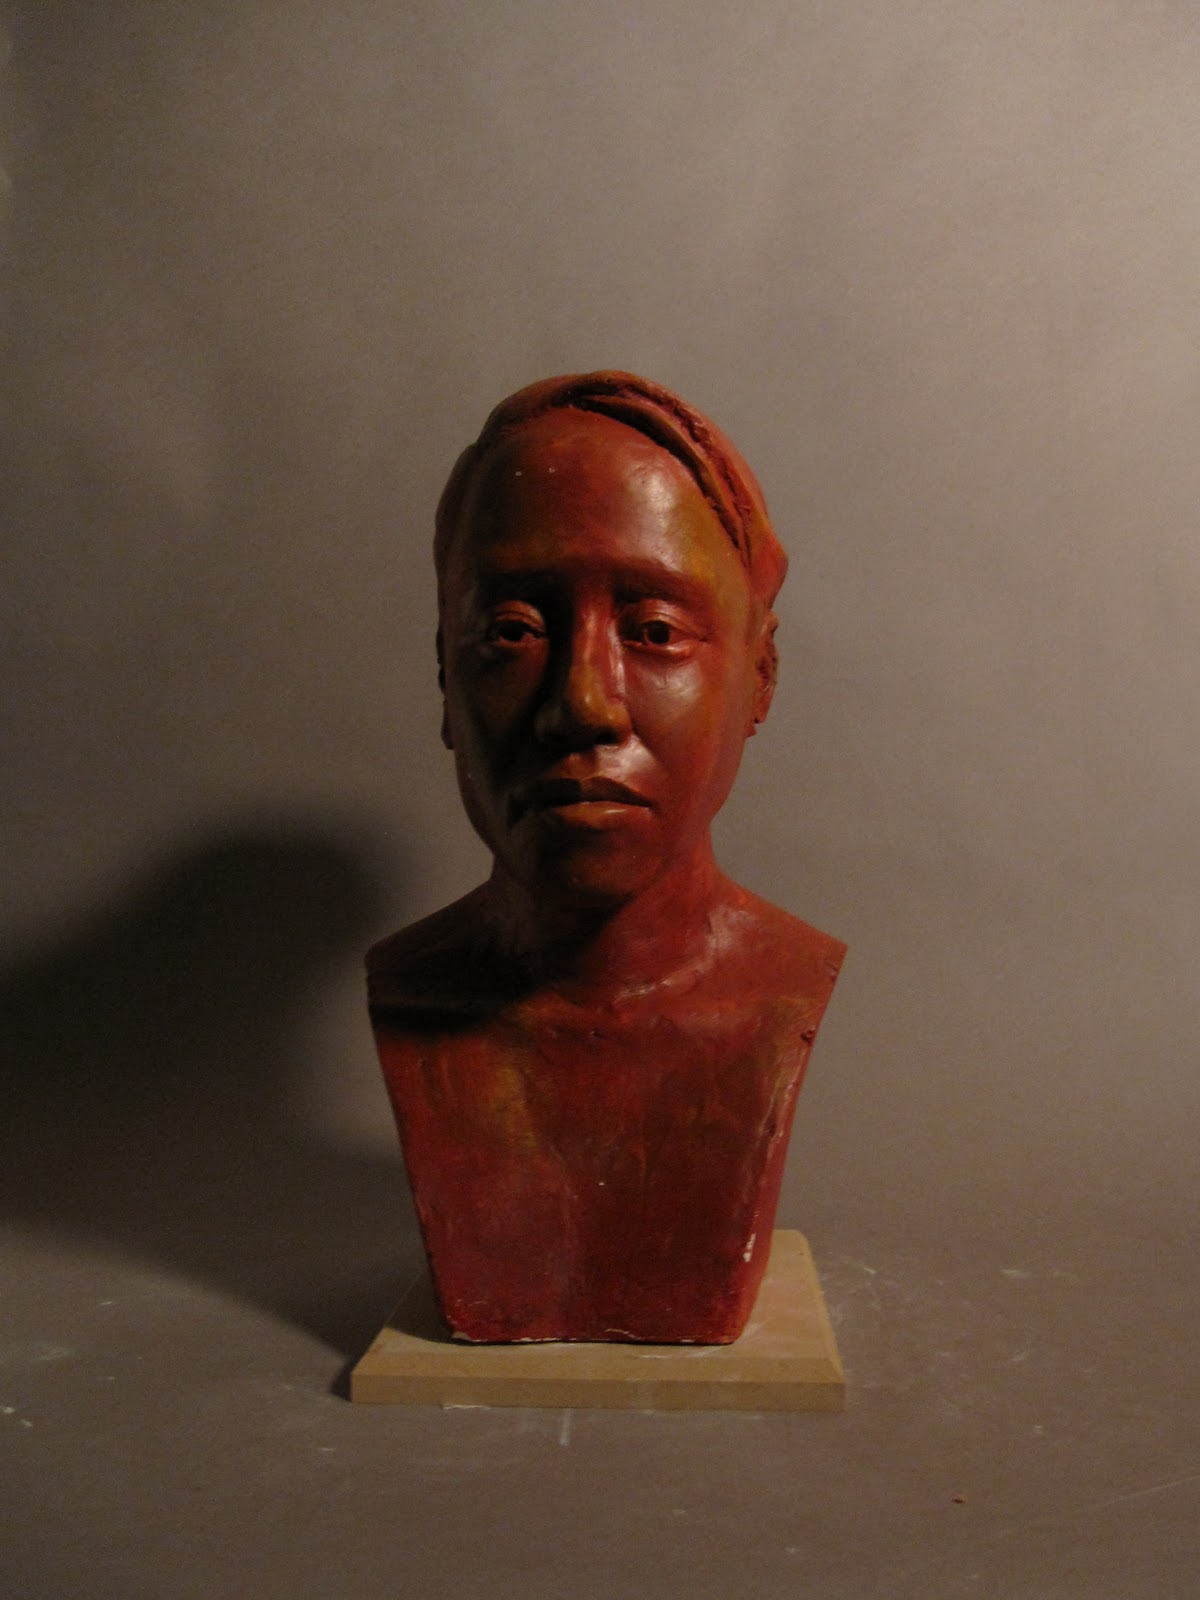 Shawn's art: Classical Figurative Sculpture -- Portrait